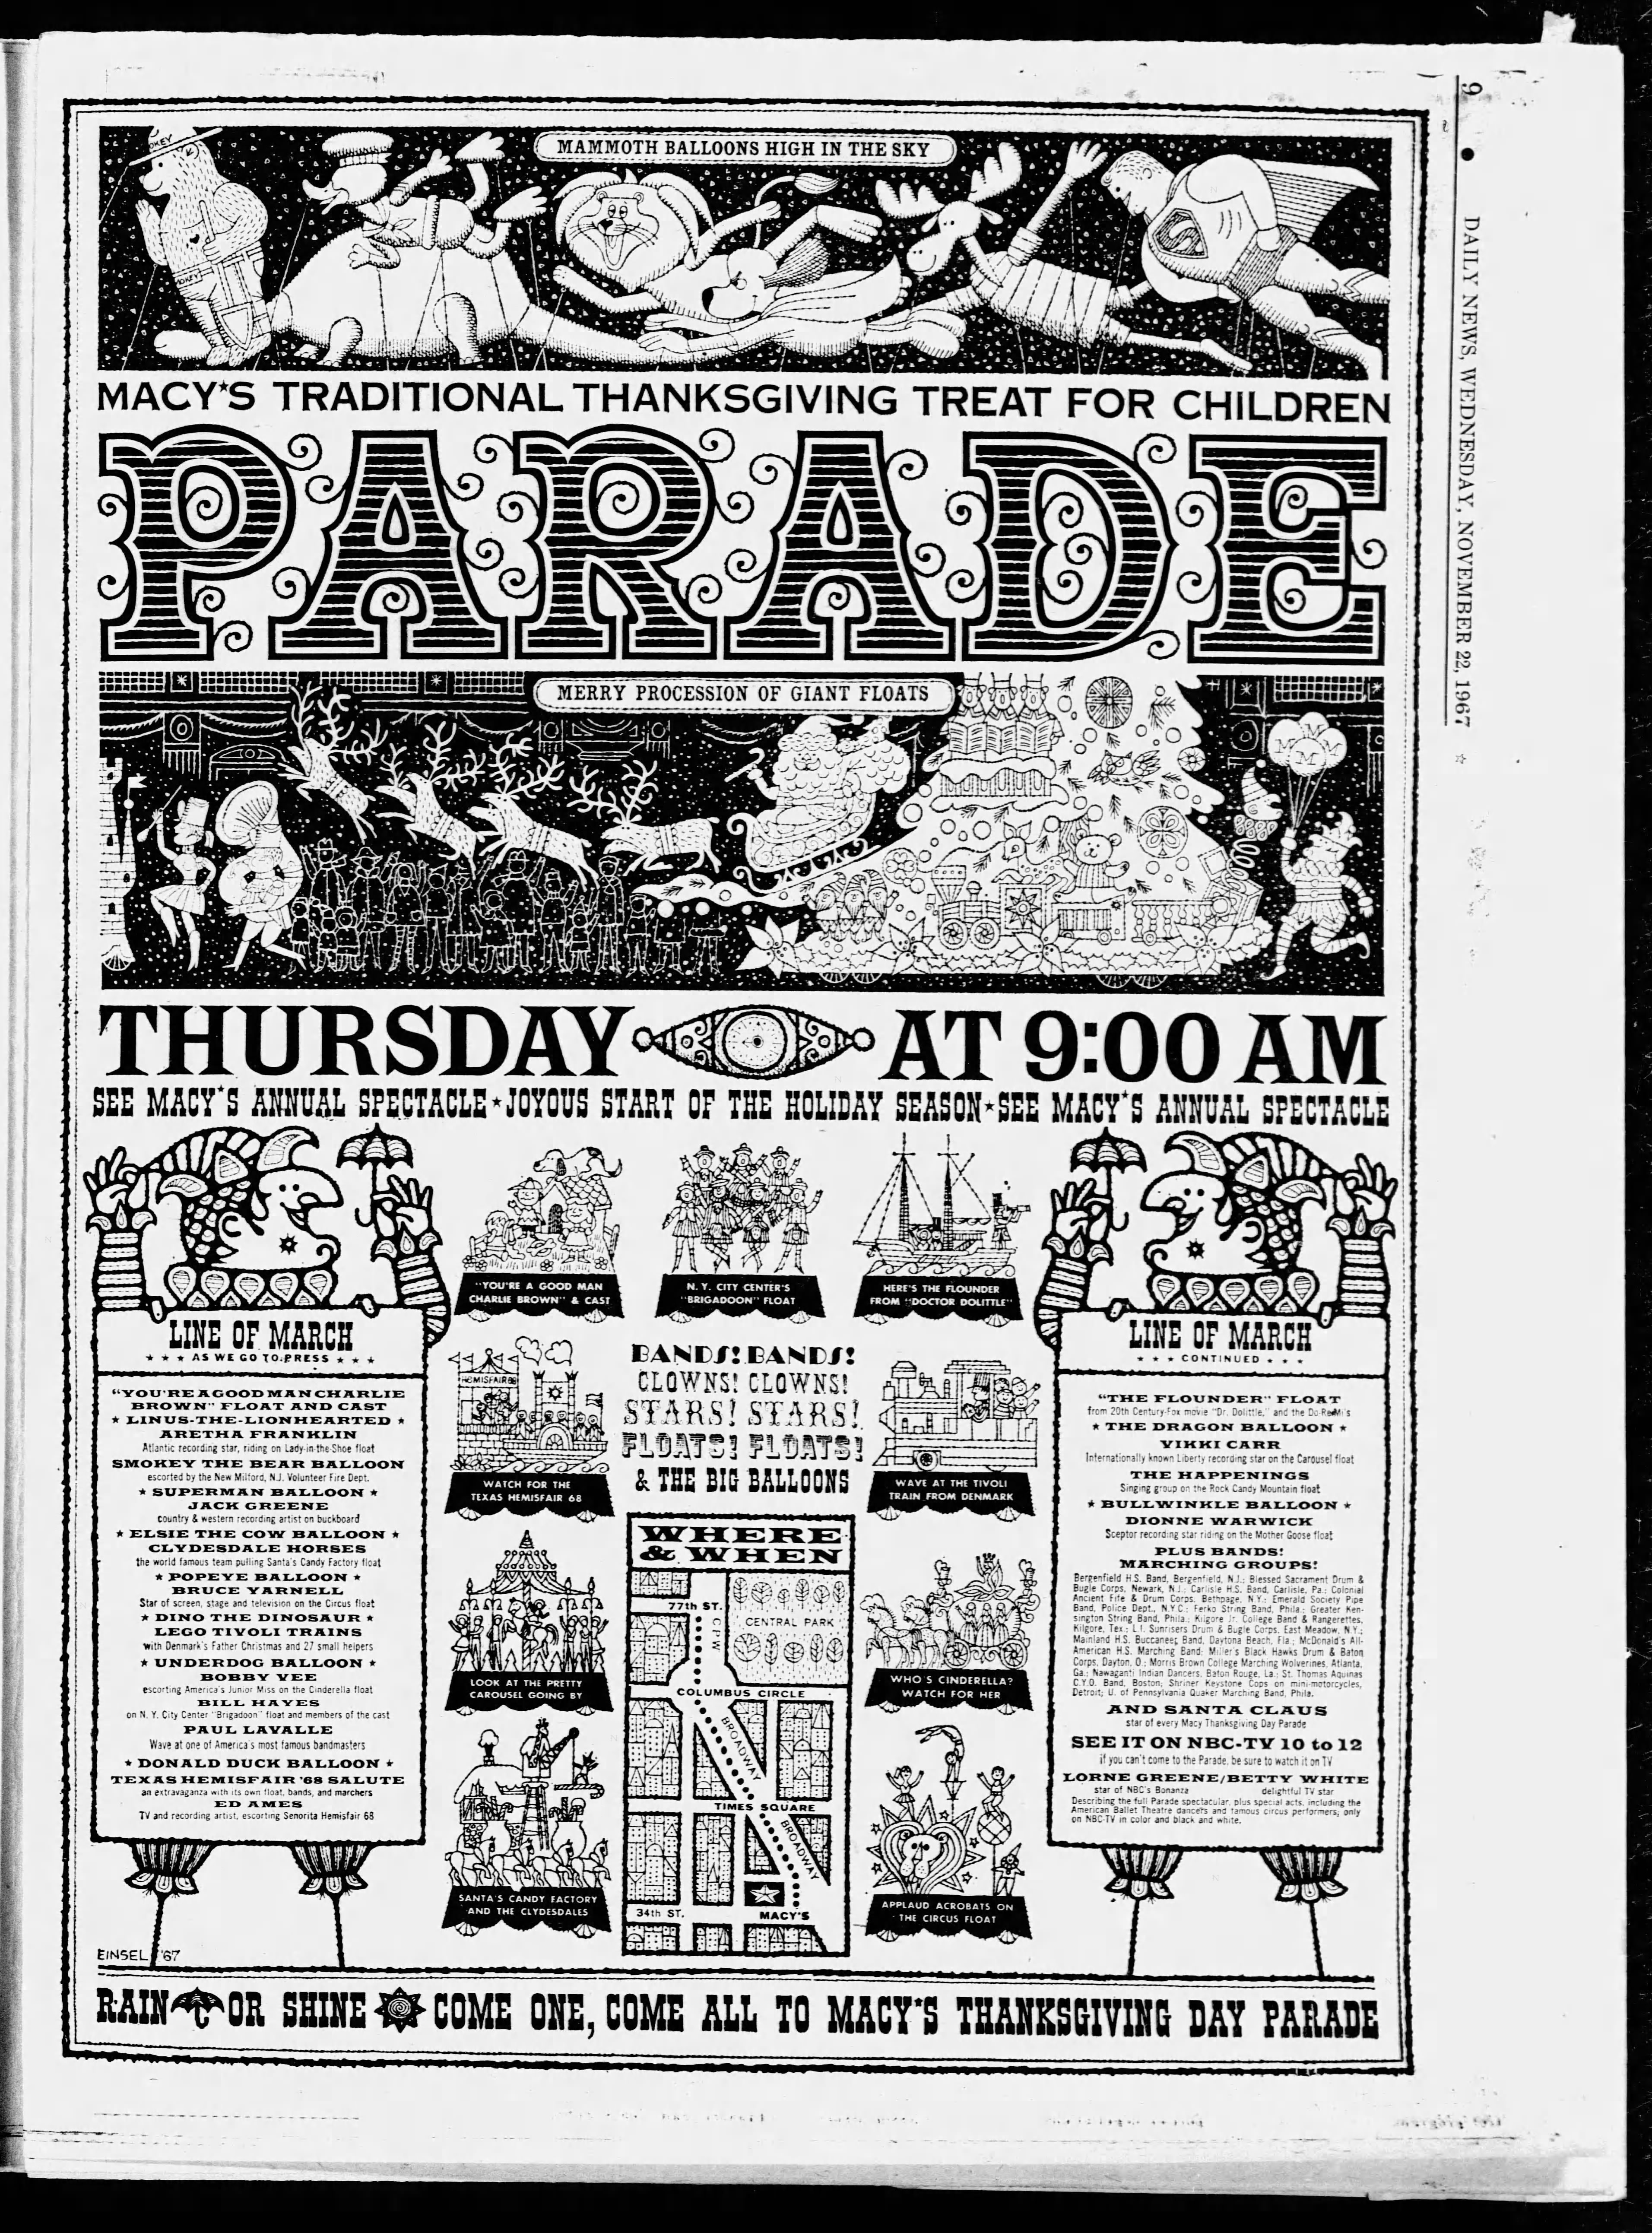 The 41st Annual Macy's Thanksgiving Day Parade